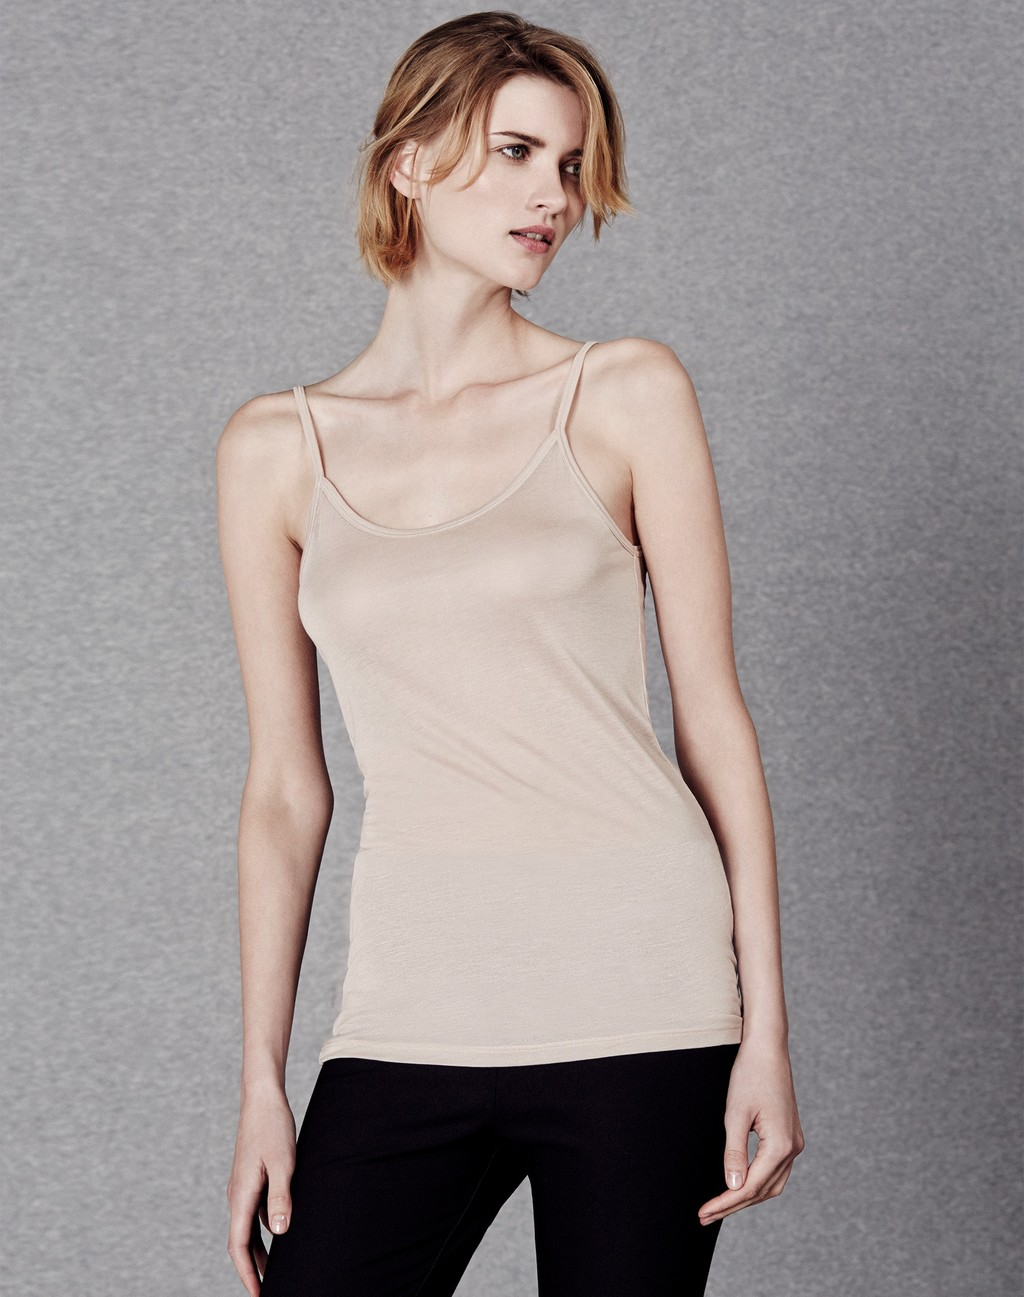 Invisible Cami Nude - sleeve style: spaghetti straps; pattern: plain; style: camisole; predominant colour: nude; occasions: casual; length: standard; neckline: scoop; fibres: viscose/rayon - 100%; fit: body skimming; sleeve length: sleeveless; texture group: jersey - clingy; pattern type: fabric; season: a/w 2015; wardrobe: basic